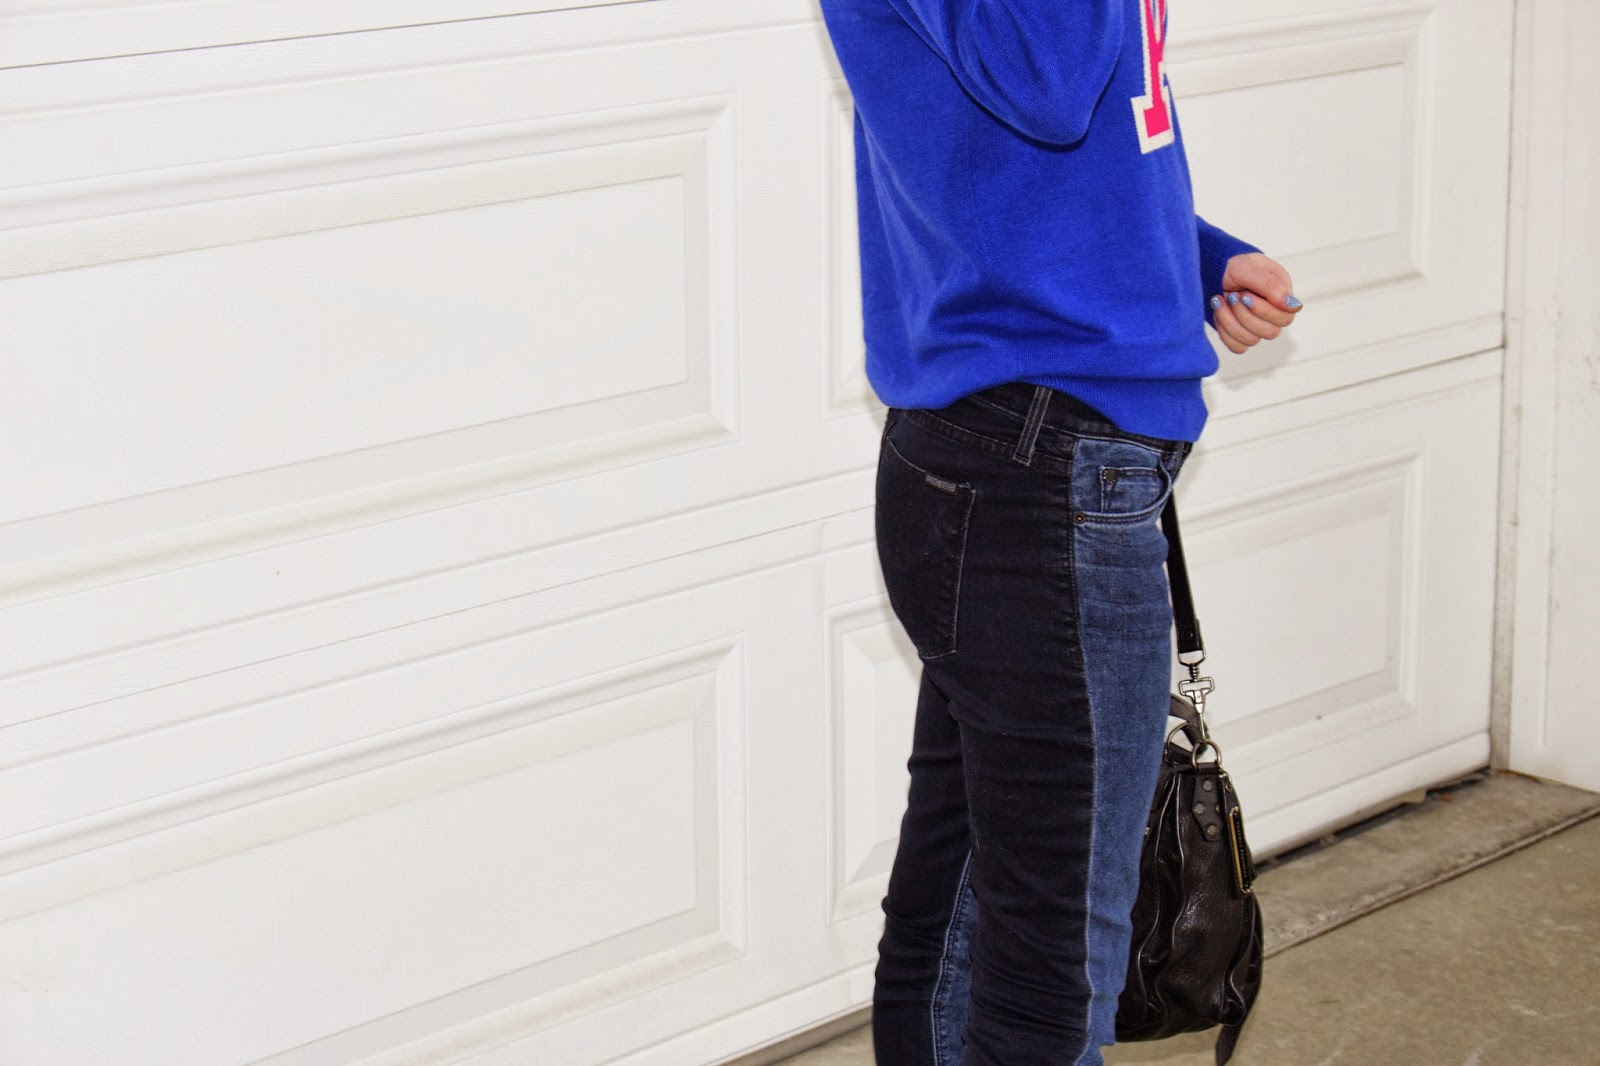 monogram sweater, letter sweater, hudson jeans, mirrored ray-bans, stuart weitzman zipit, ps1